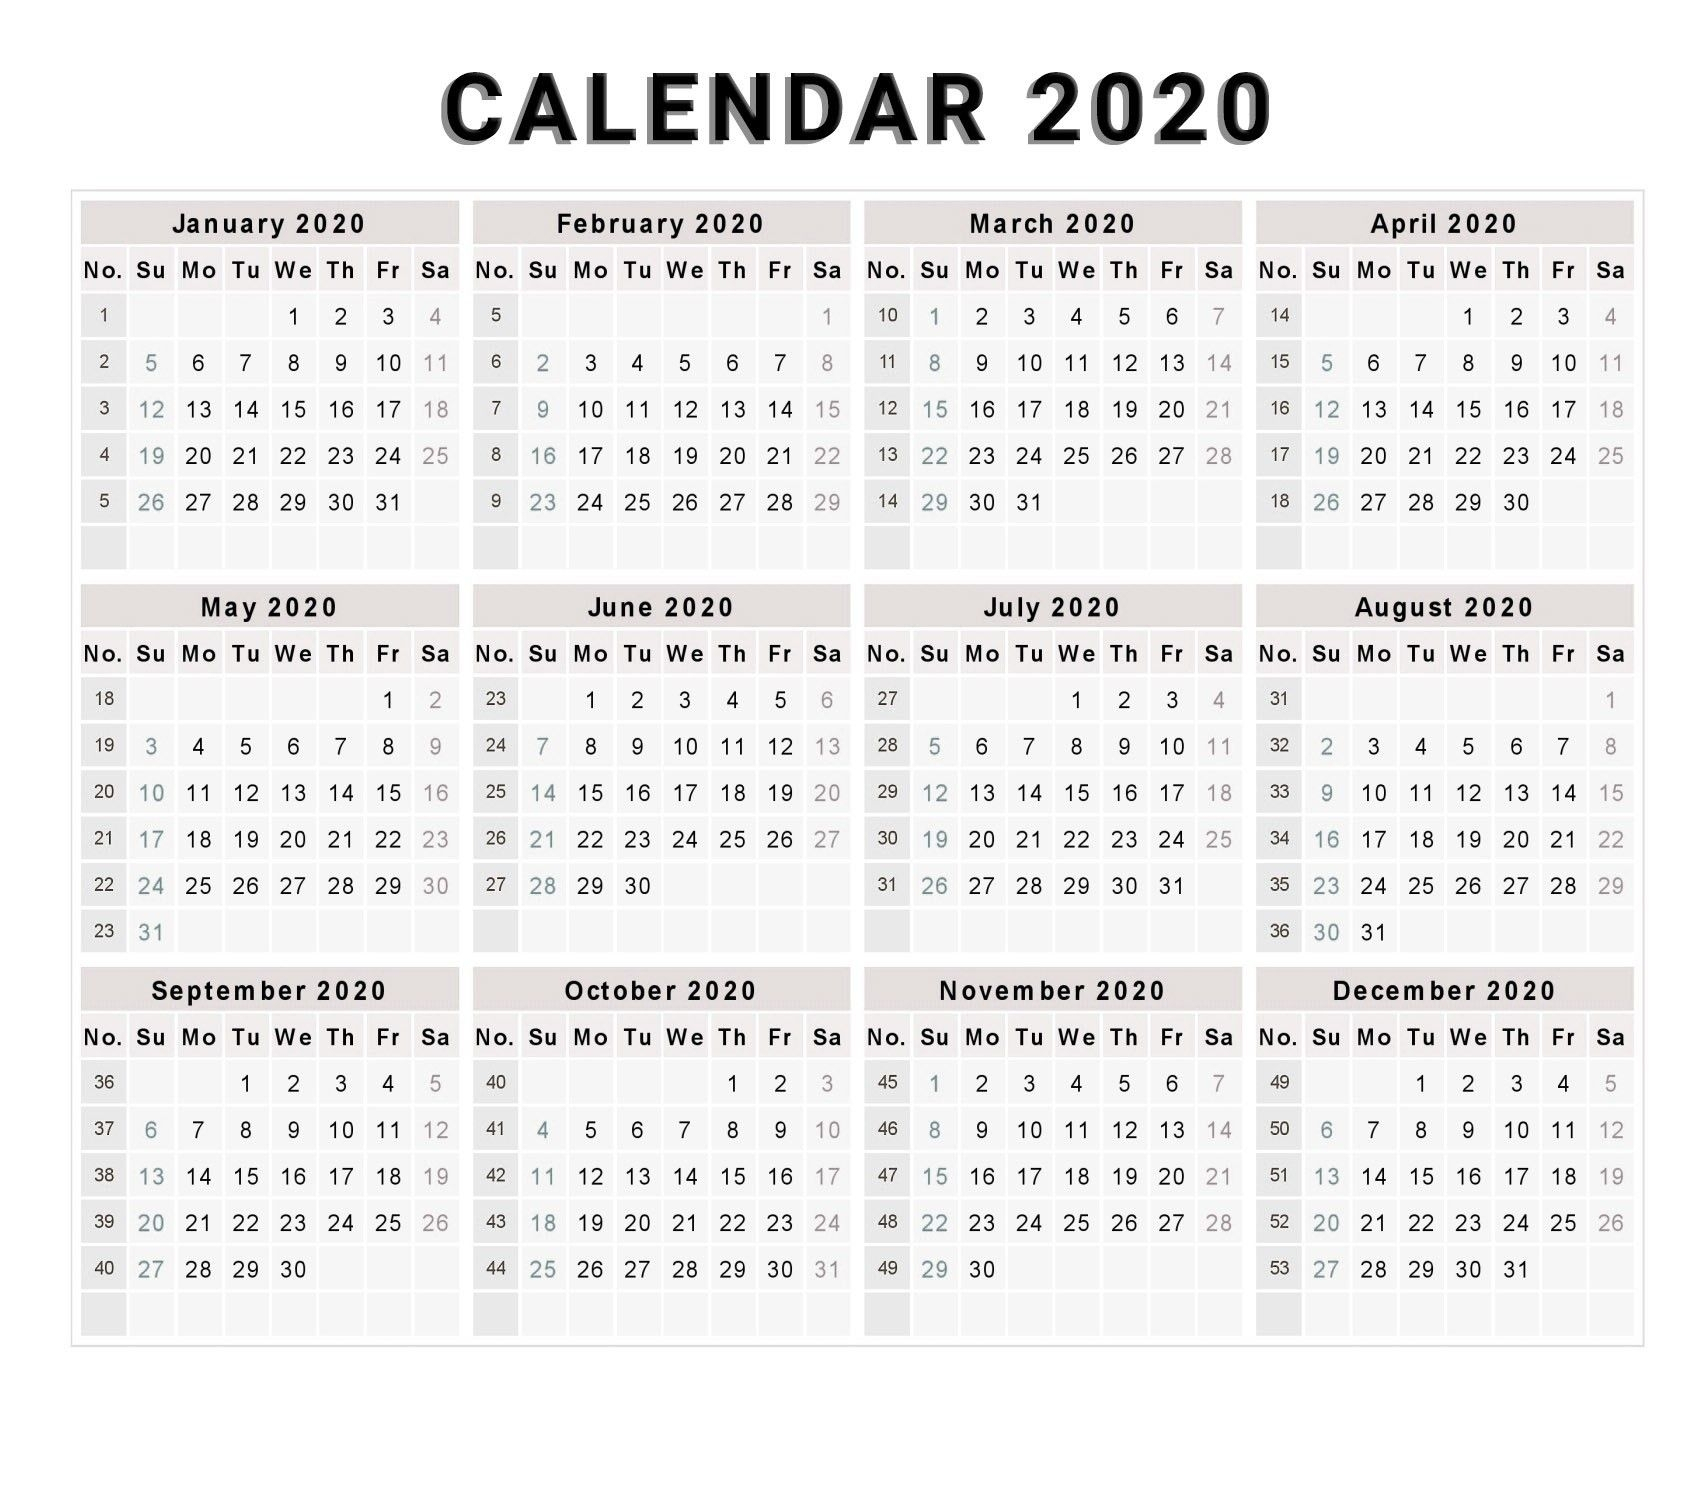 Printable Calendar 2020 With Week Numbers | Monthly inside Printable Calendar By Week